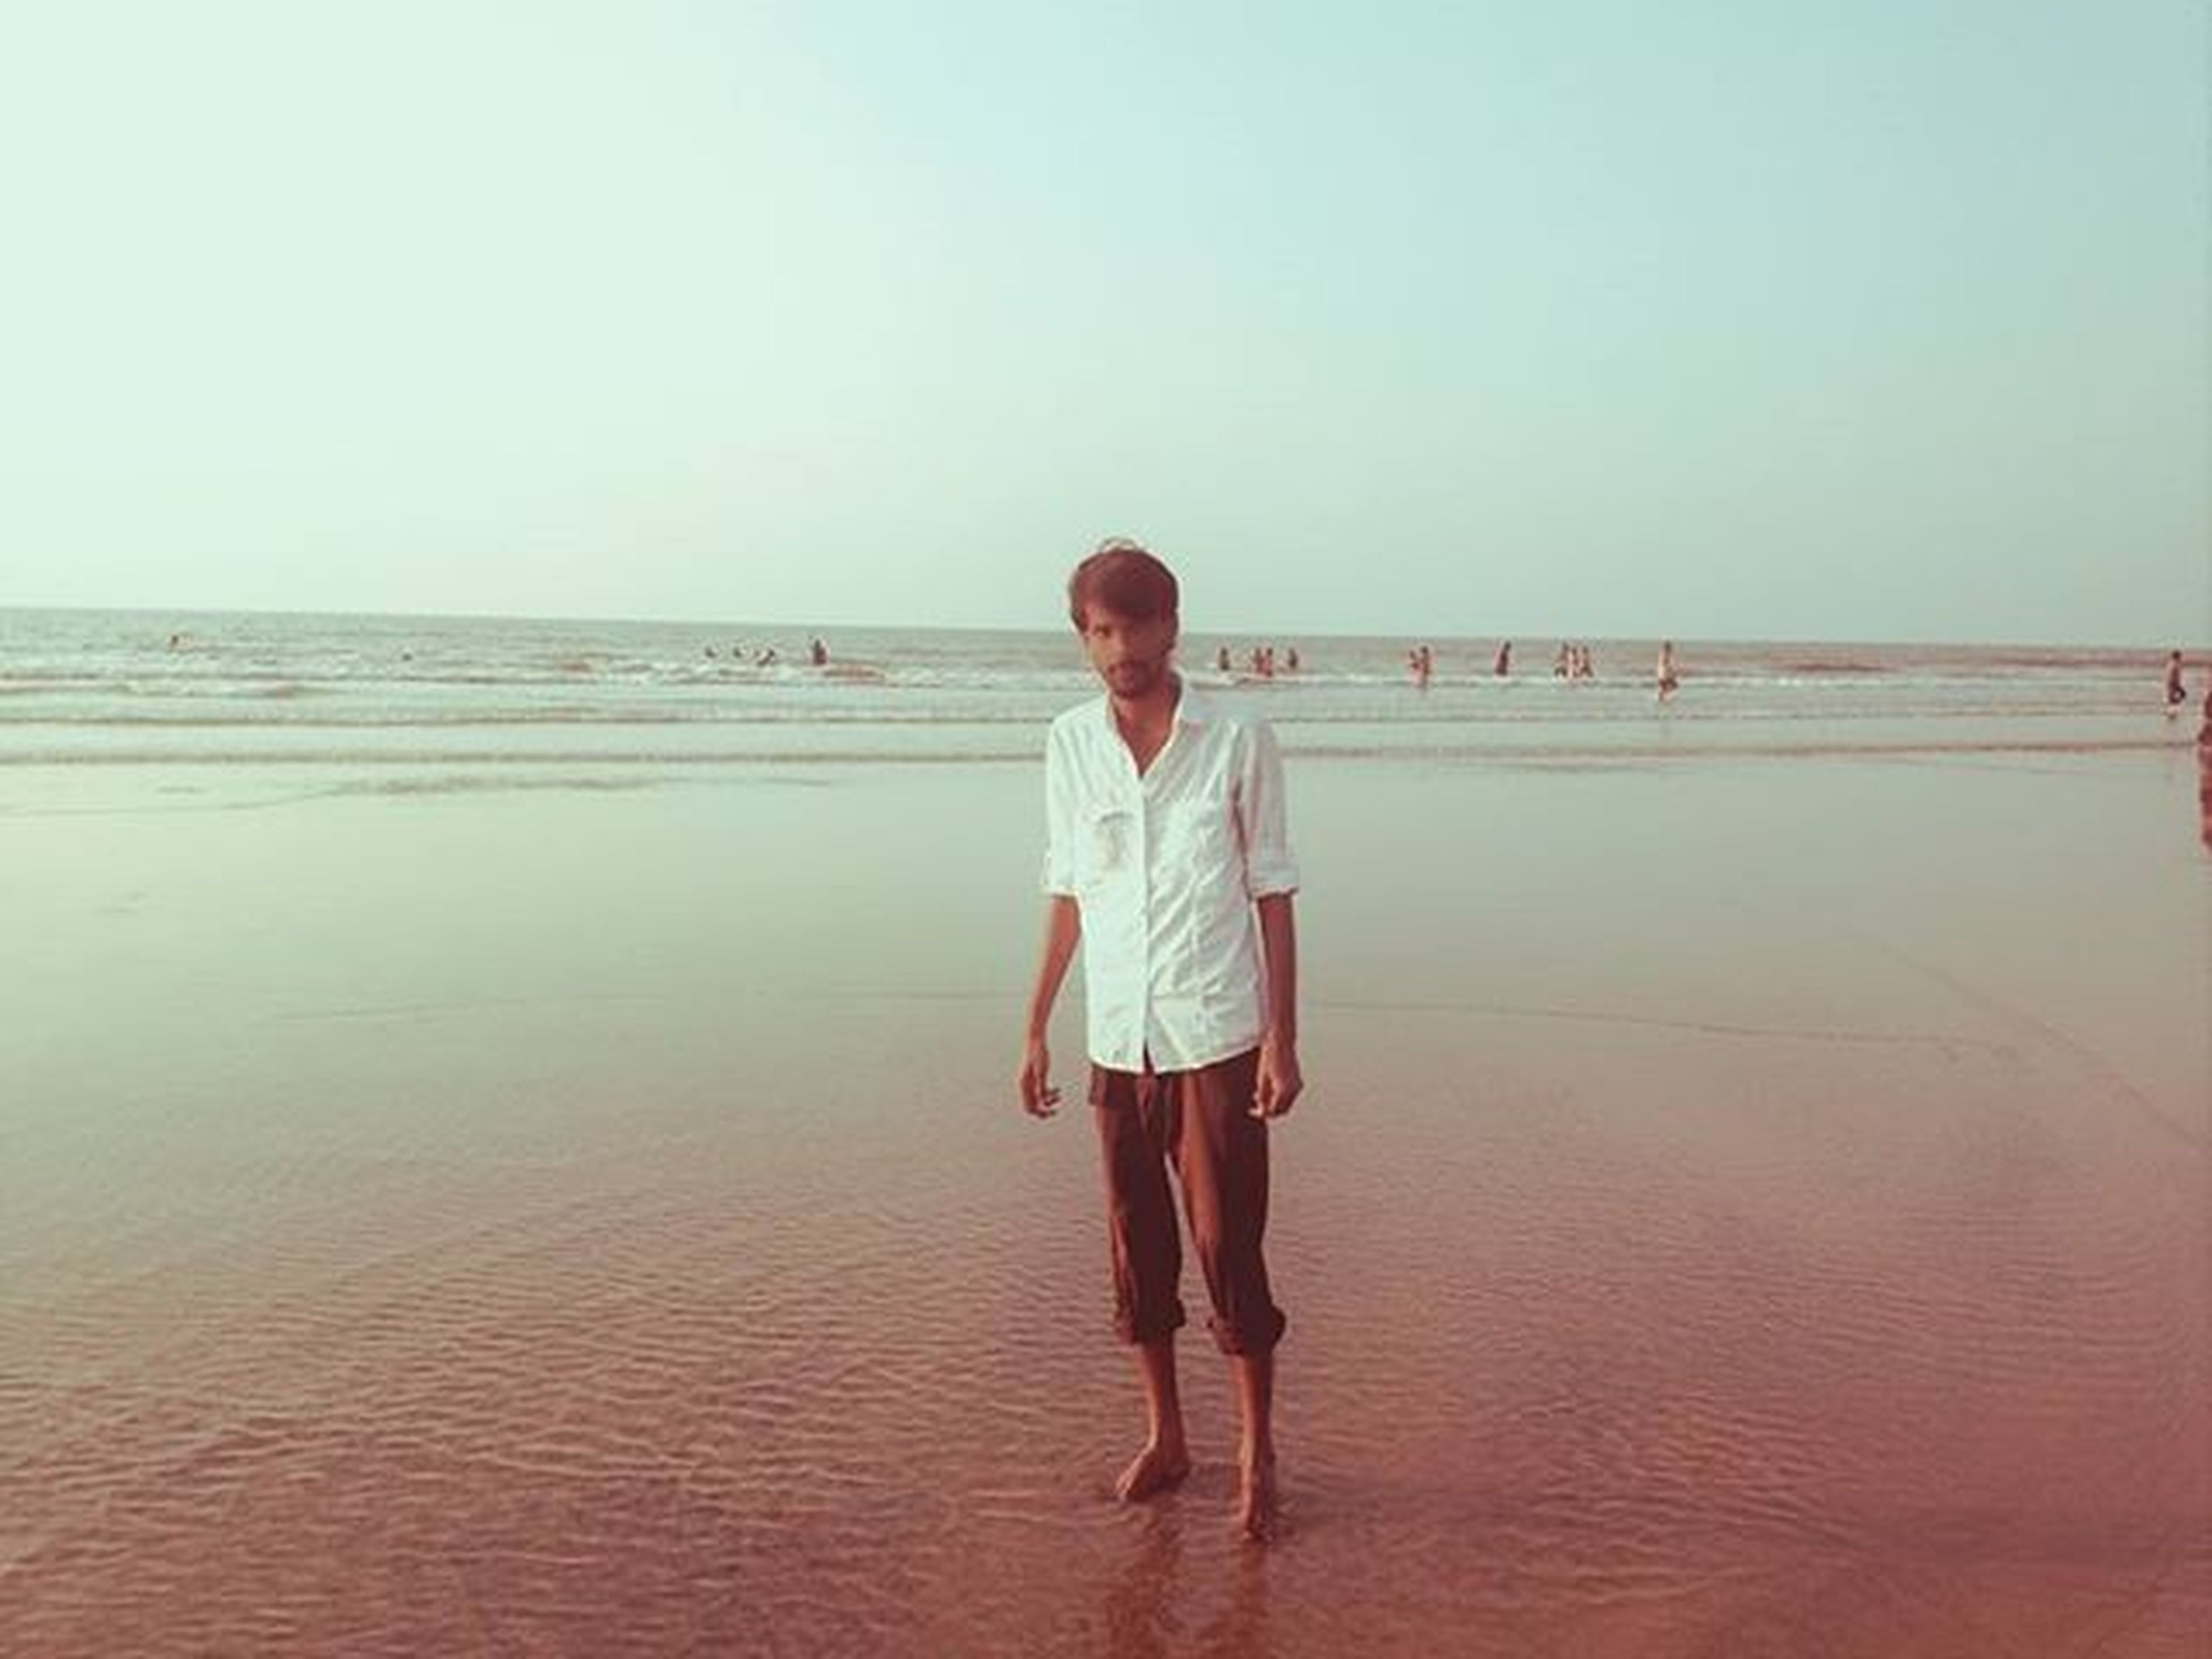 sea, water, full length, horizon over water, rear view, copy space, clear sky, standing, lifestyles, casual clothing, leisure activity, beach, walking, tranquility, tranquil scene, young adult, nature, person